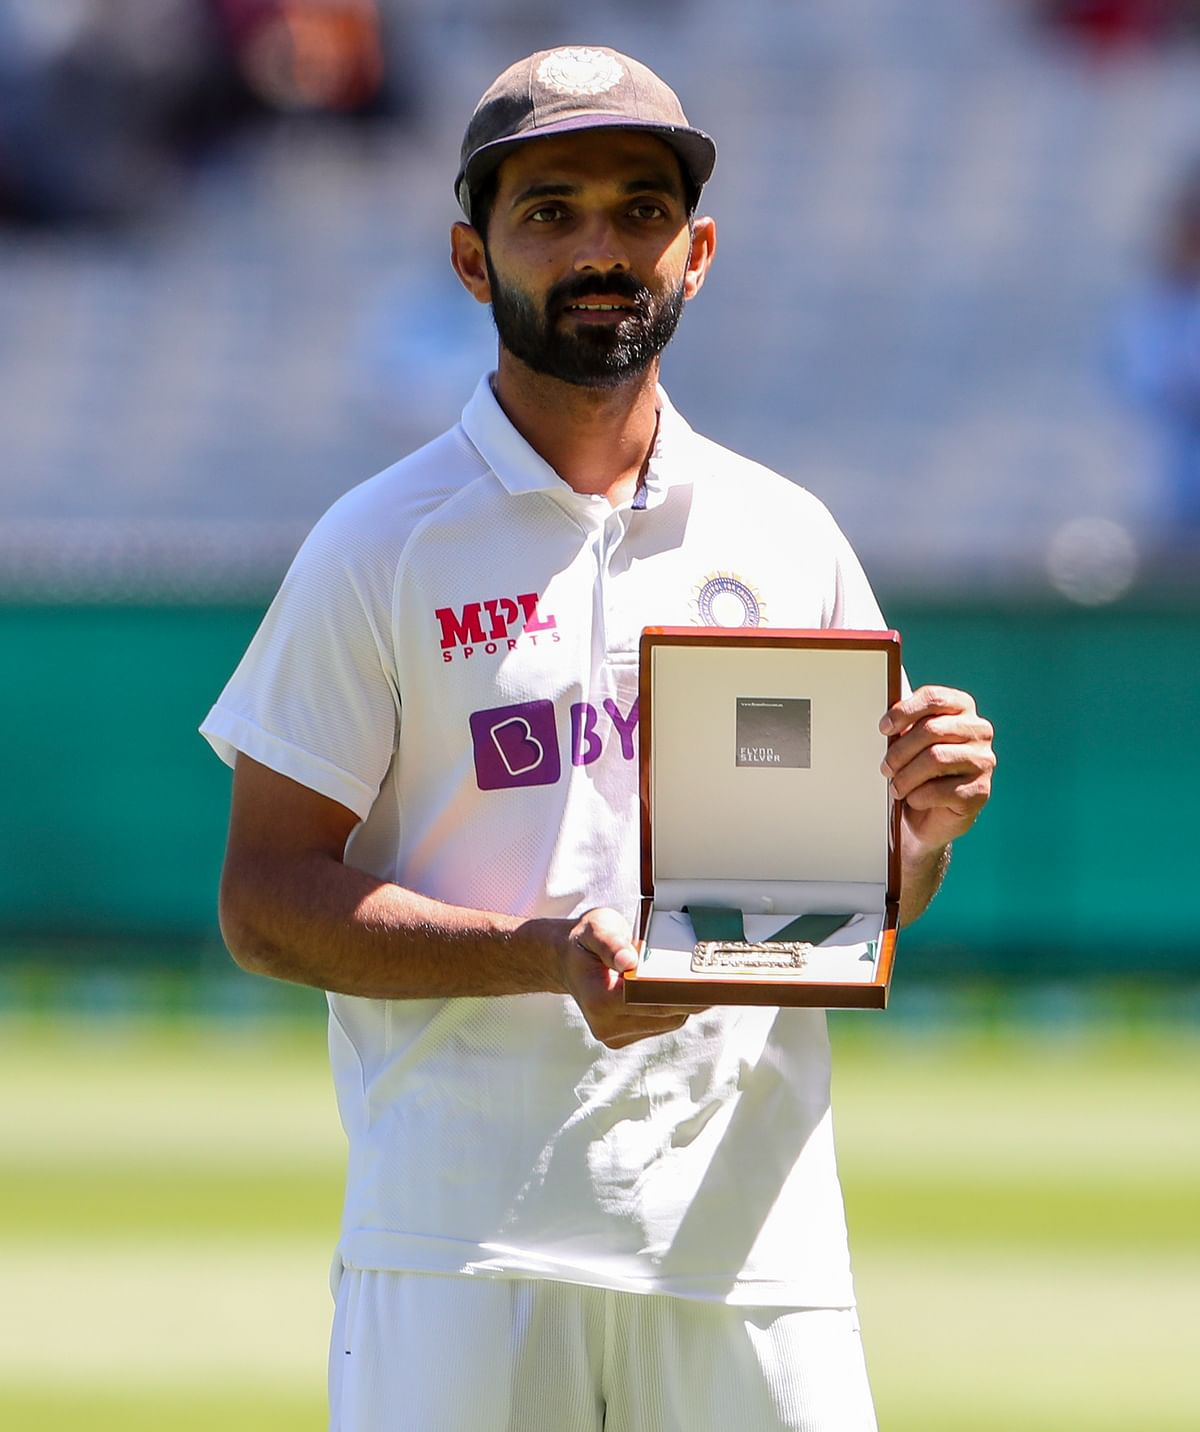 Ajinkya Rahane with Johnny Mullagh Medal, awarded to thePlayer of the Match for Boxing Day Test, 2020.